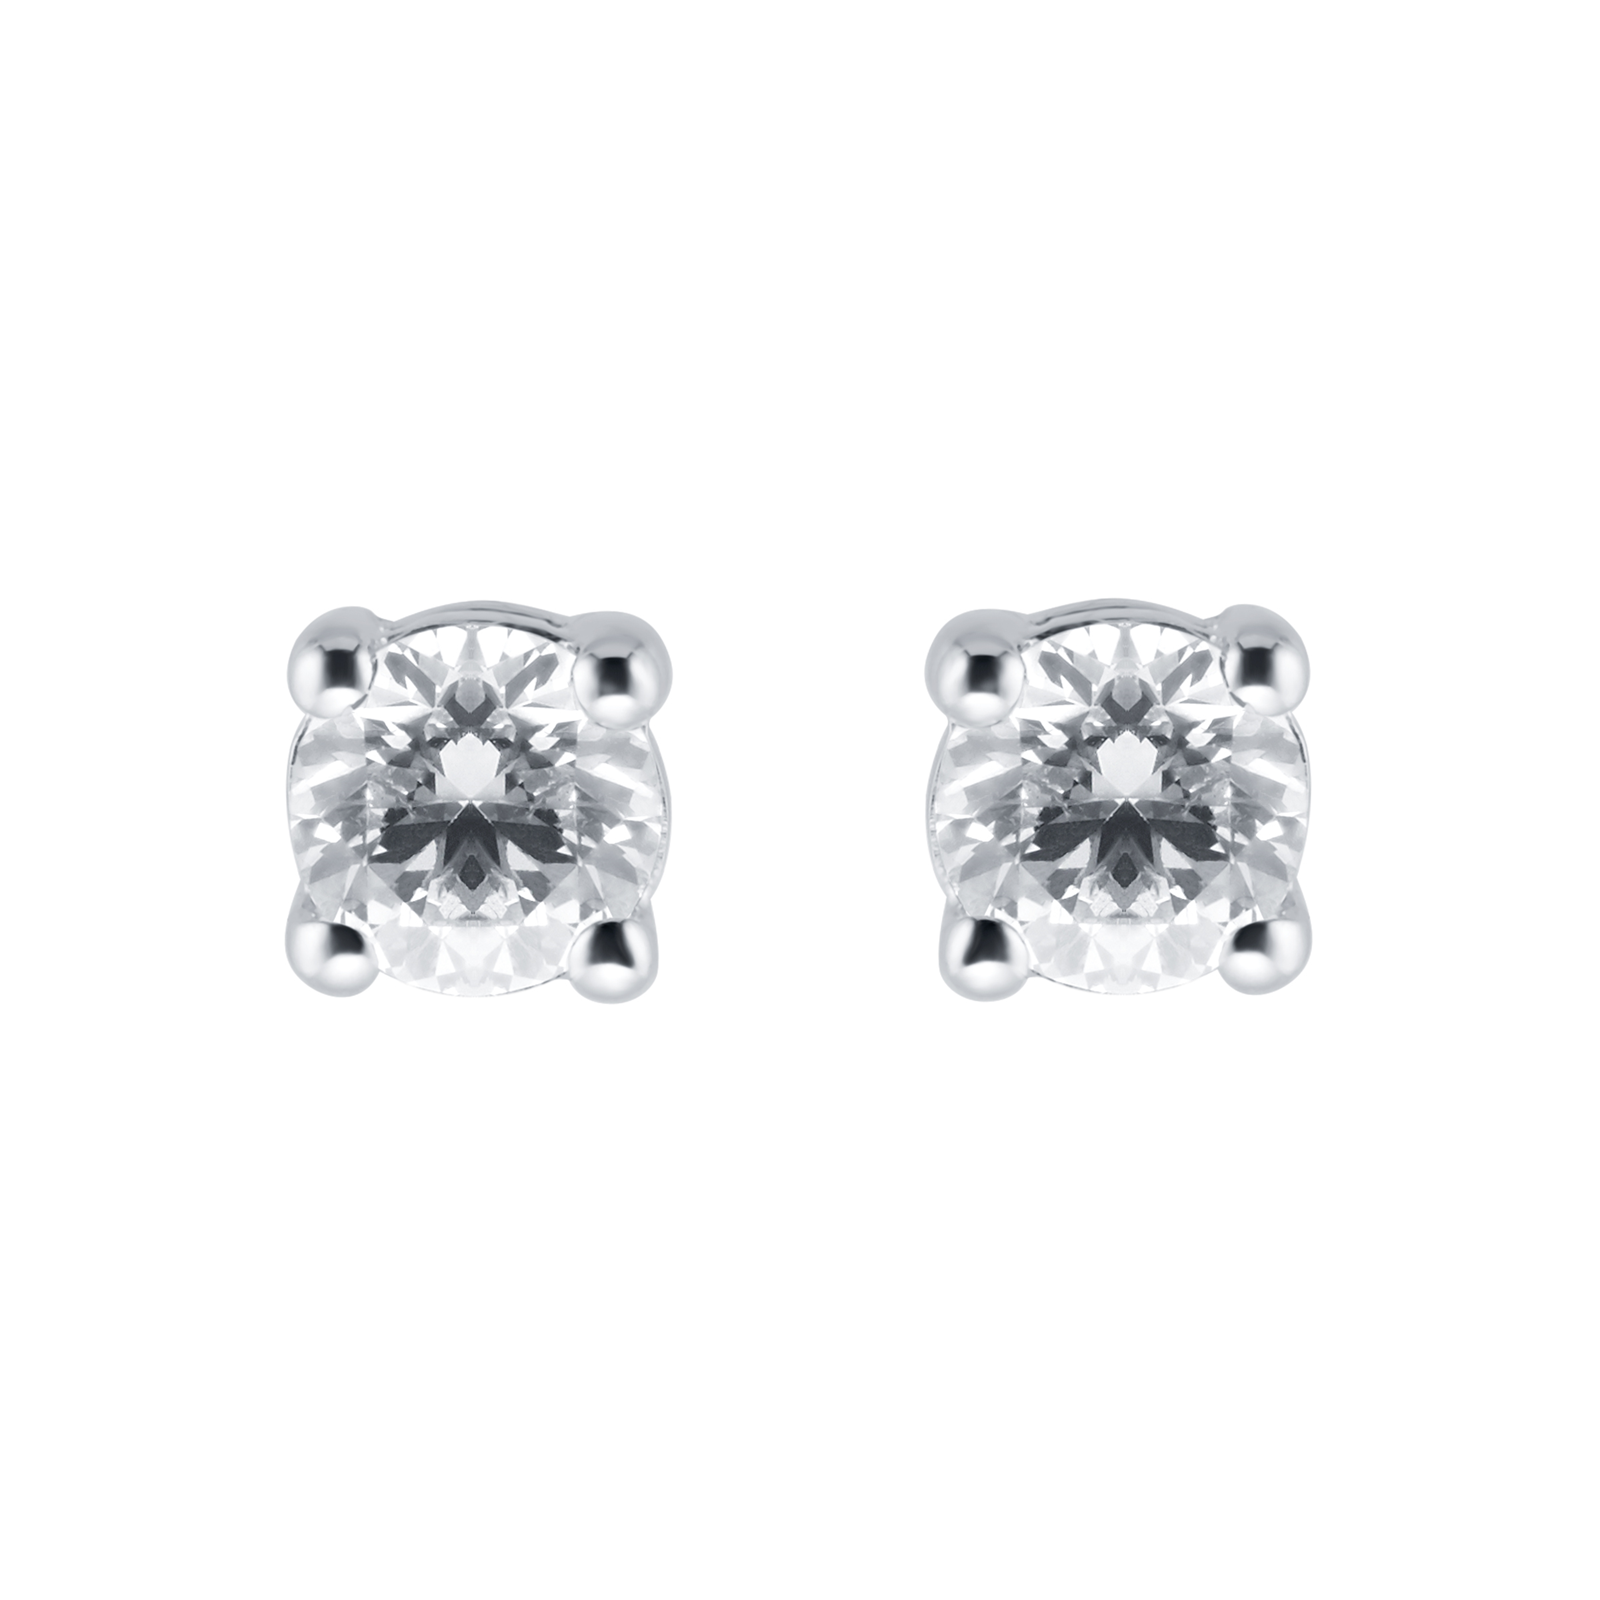 en zirconia enomis oxide zirconium zoom loading earrings stud